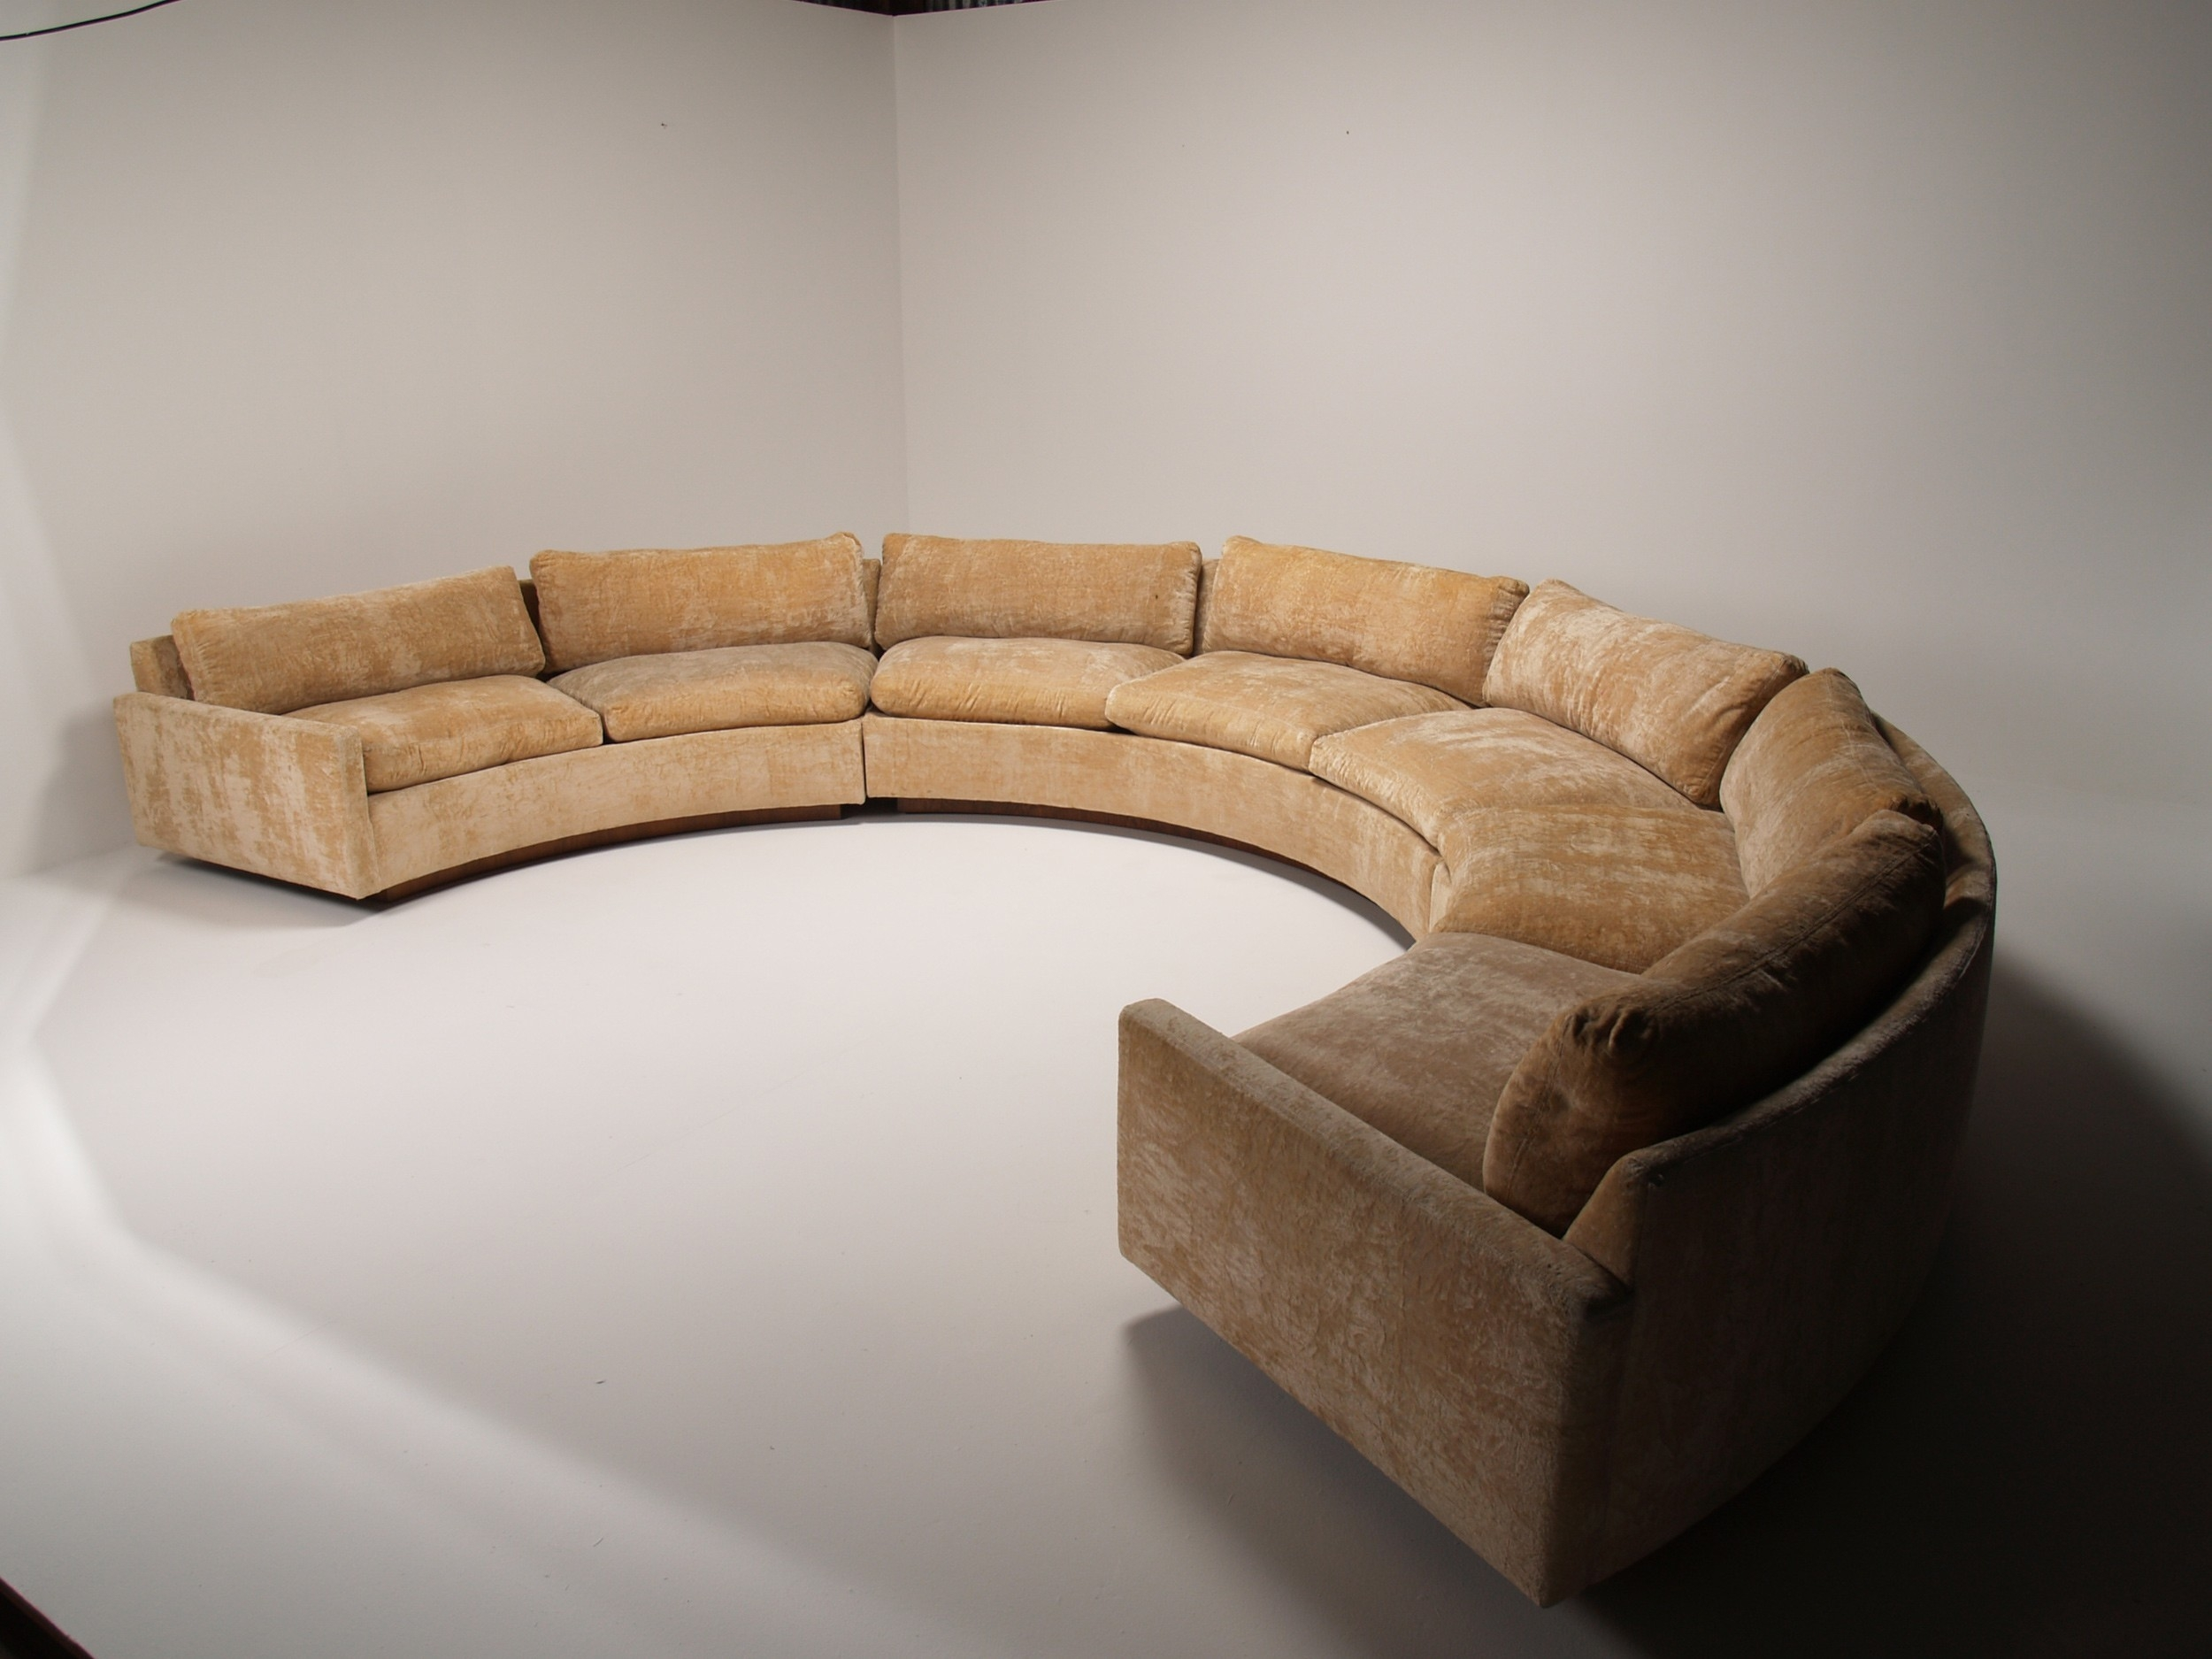 Fabulous Ccdeeaefeccedc Has Cool Sofa Ideas On Home Design Ideas With Regard To Cool Sofa Ideas (Image 6 of 15)